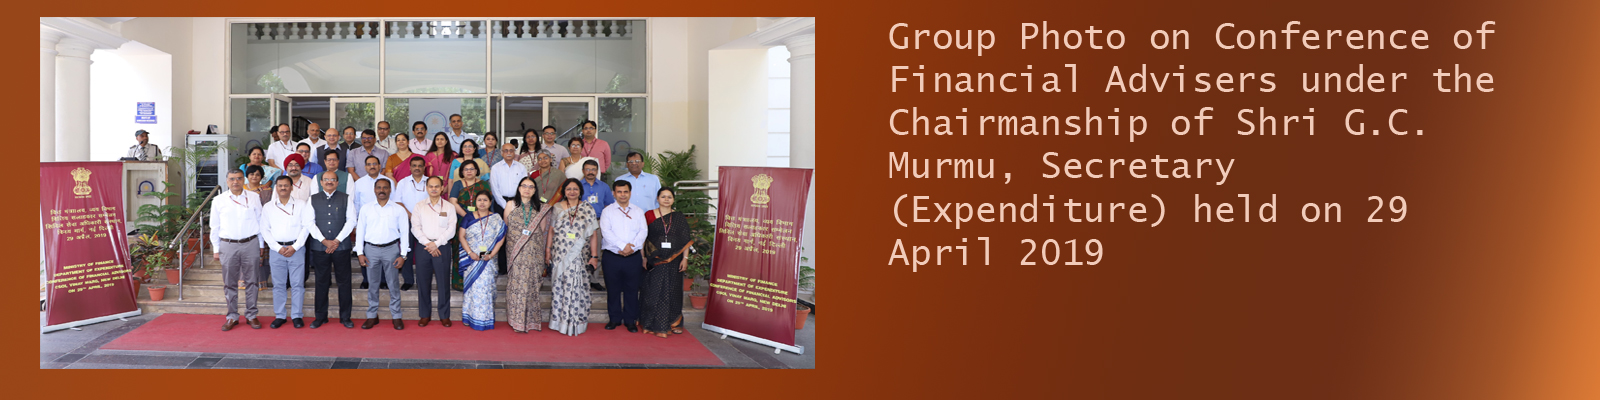 Conference of Financial Advisers under the Chairmanship of Shri G.C. Murmu, Secretary (Expenditure)